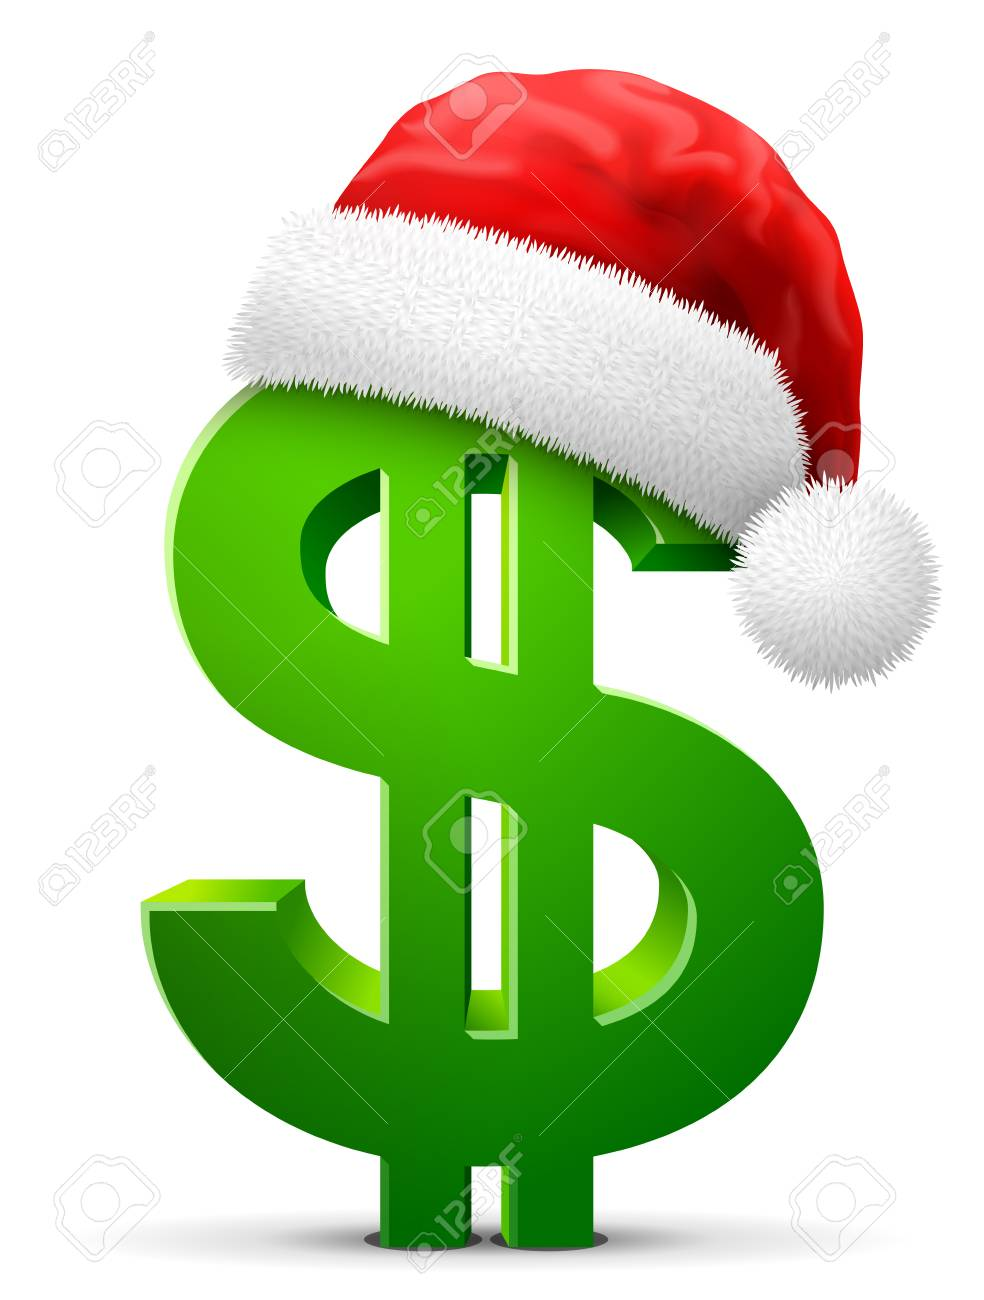 Dollar Symbol In Red Santa Claus Hat Christmas Hat Is Put On Royalty Free Cliparts Vectors And Stock Illustration Image 86527077